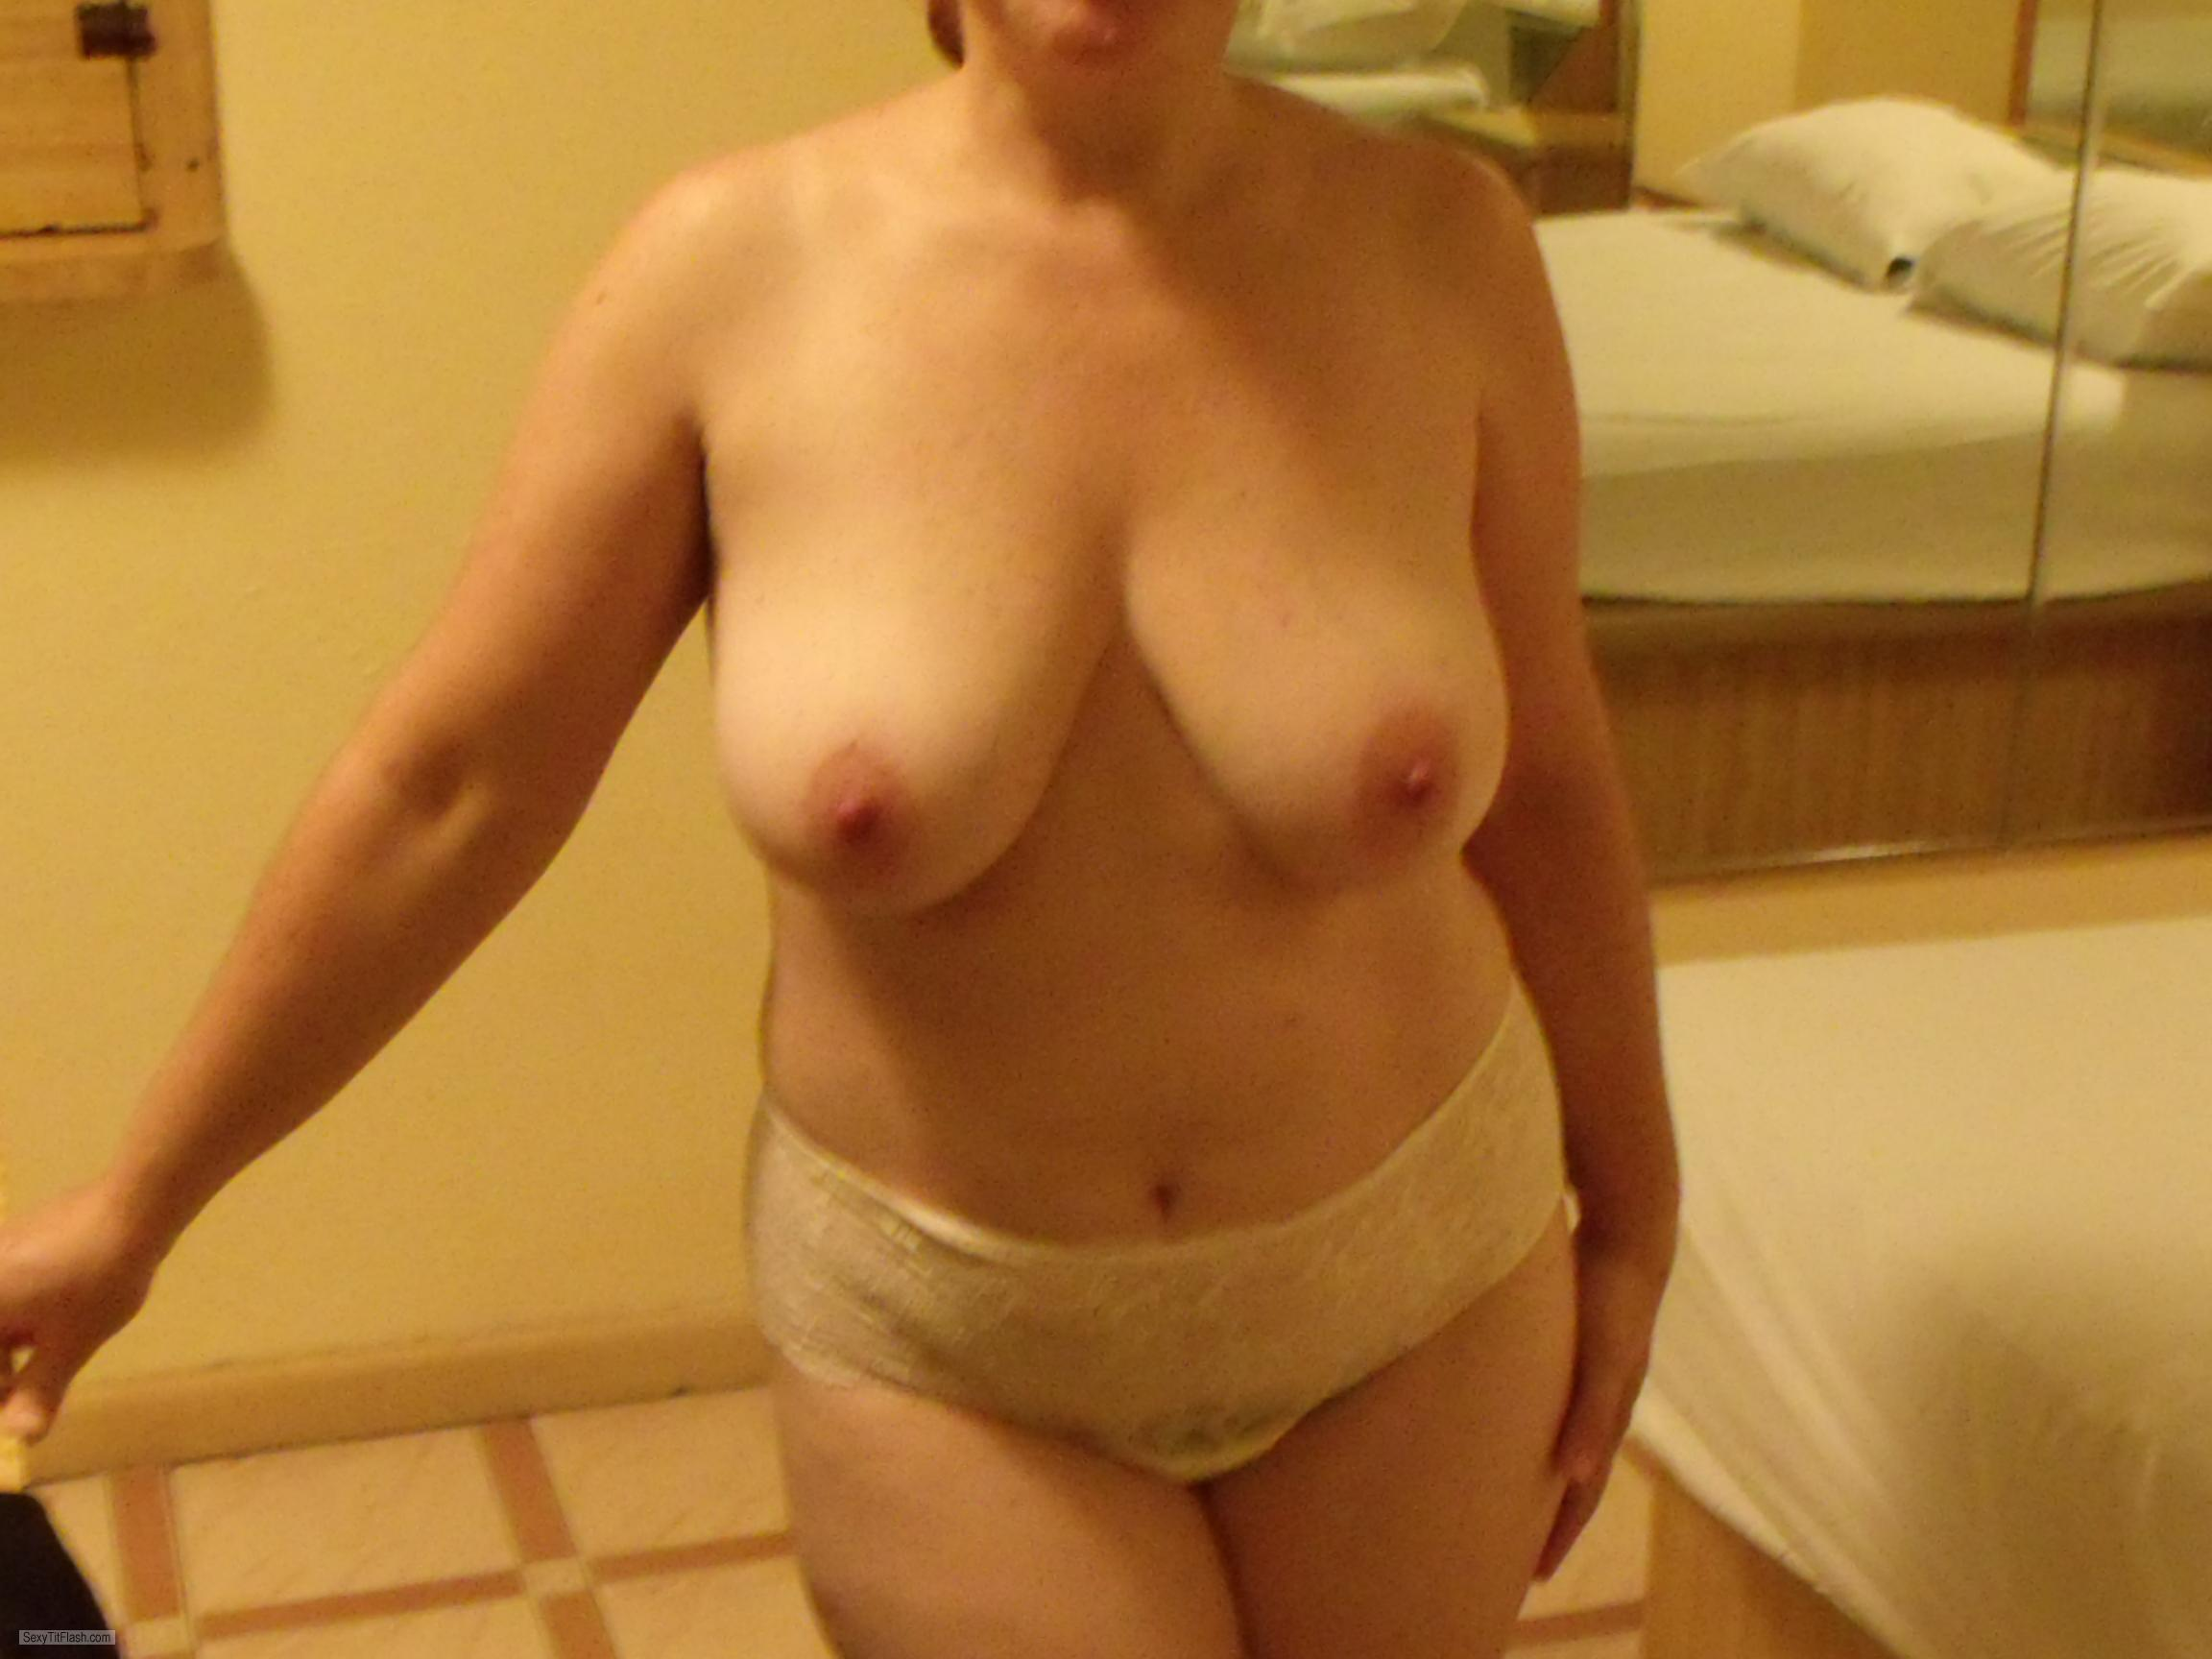 Tit Flash: My Coworker's Big Tits - Shory from United States